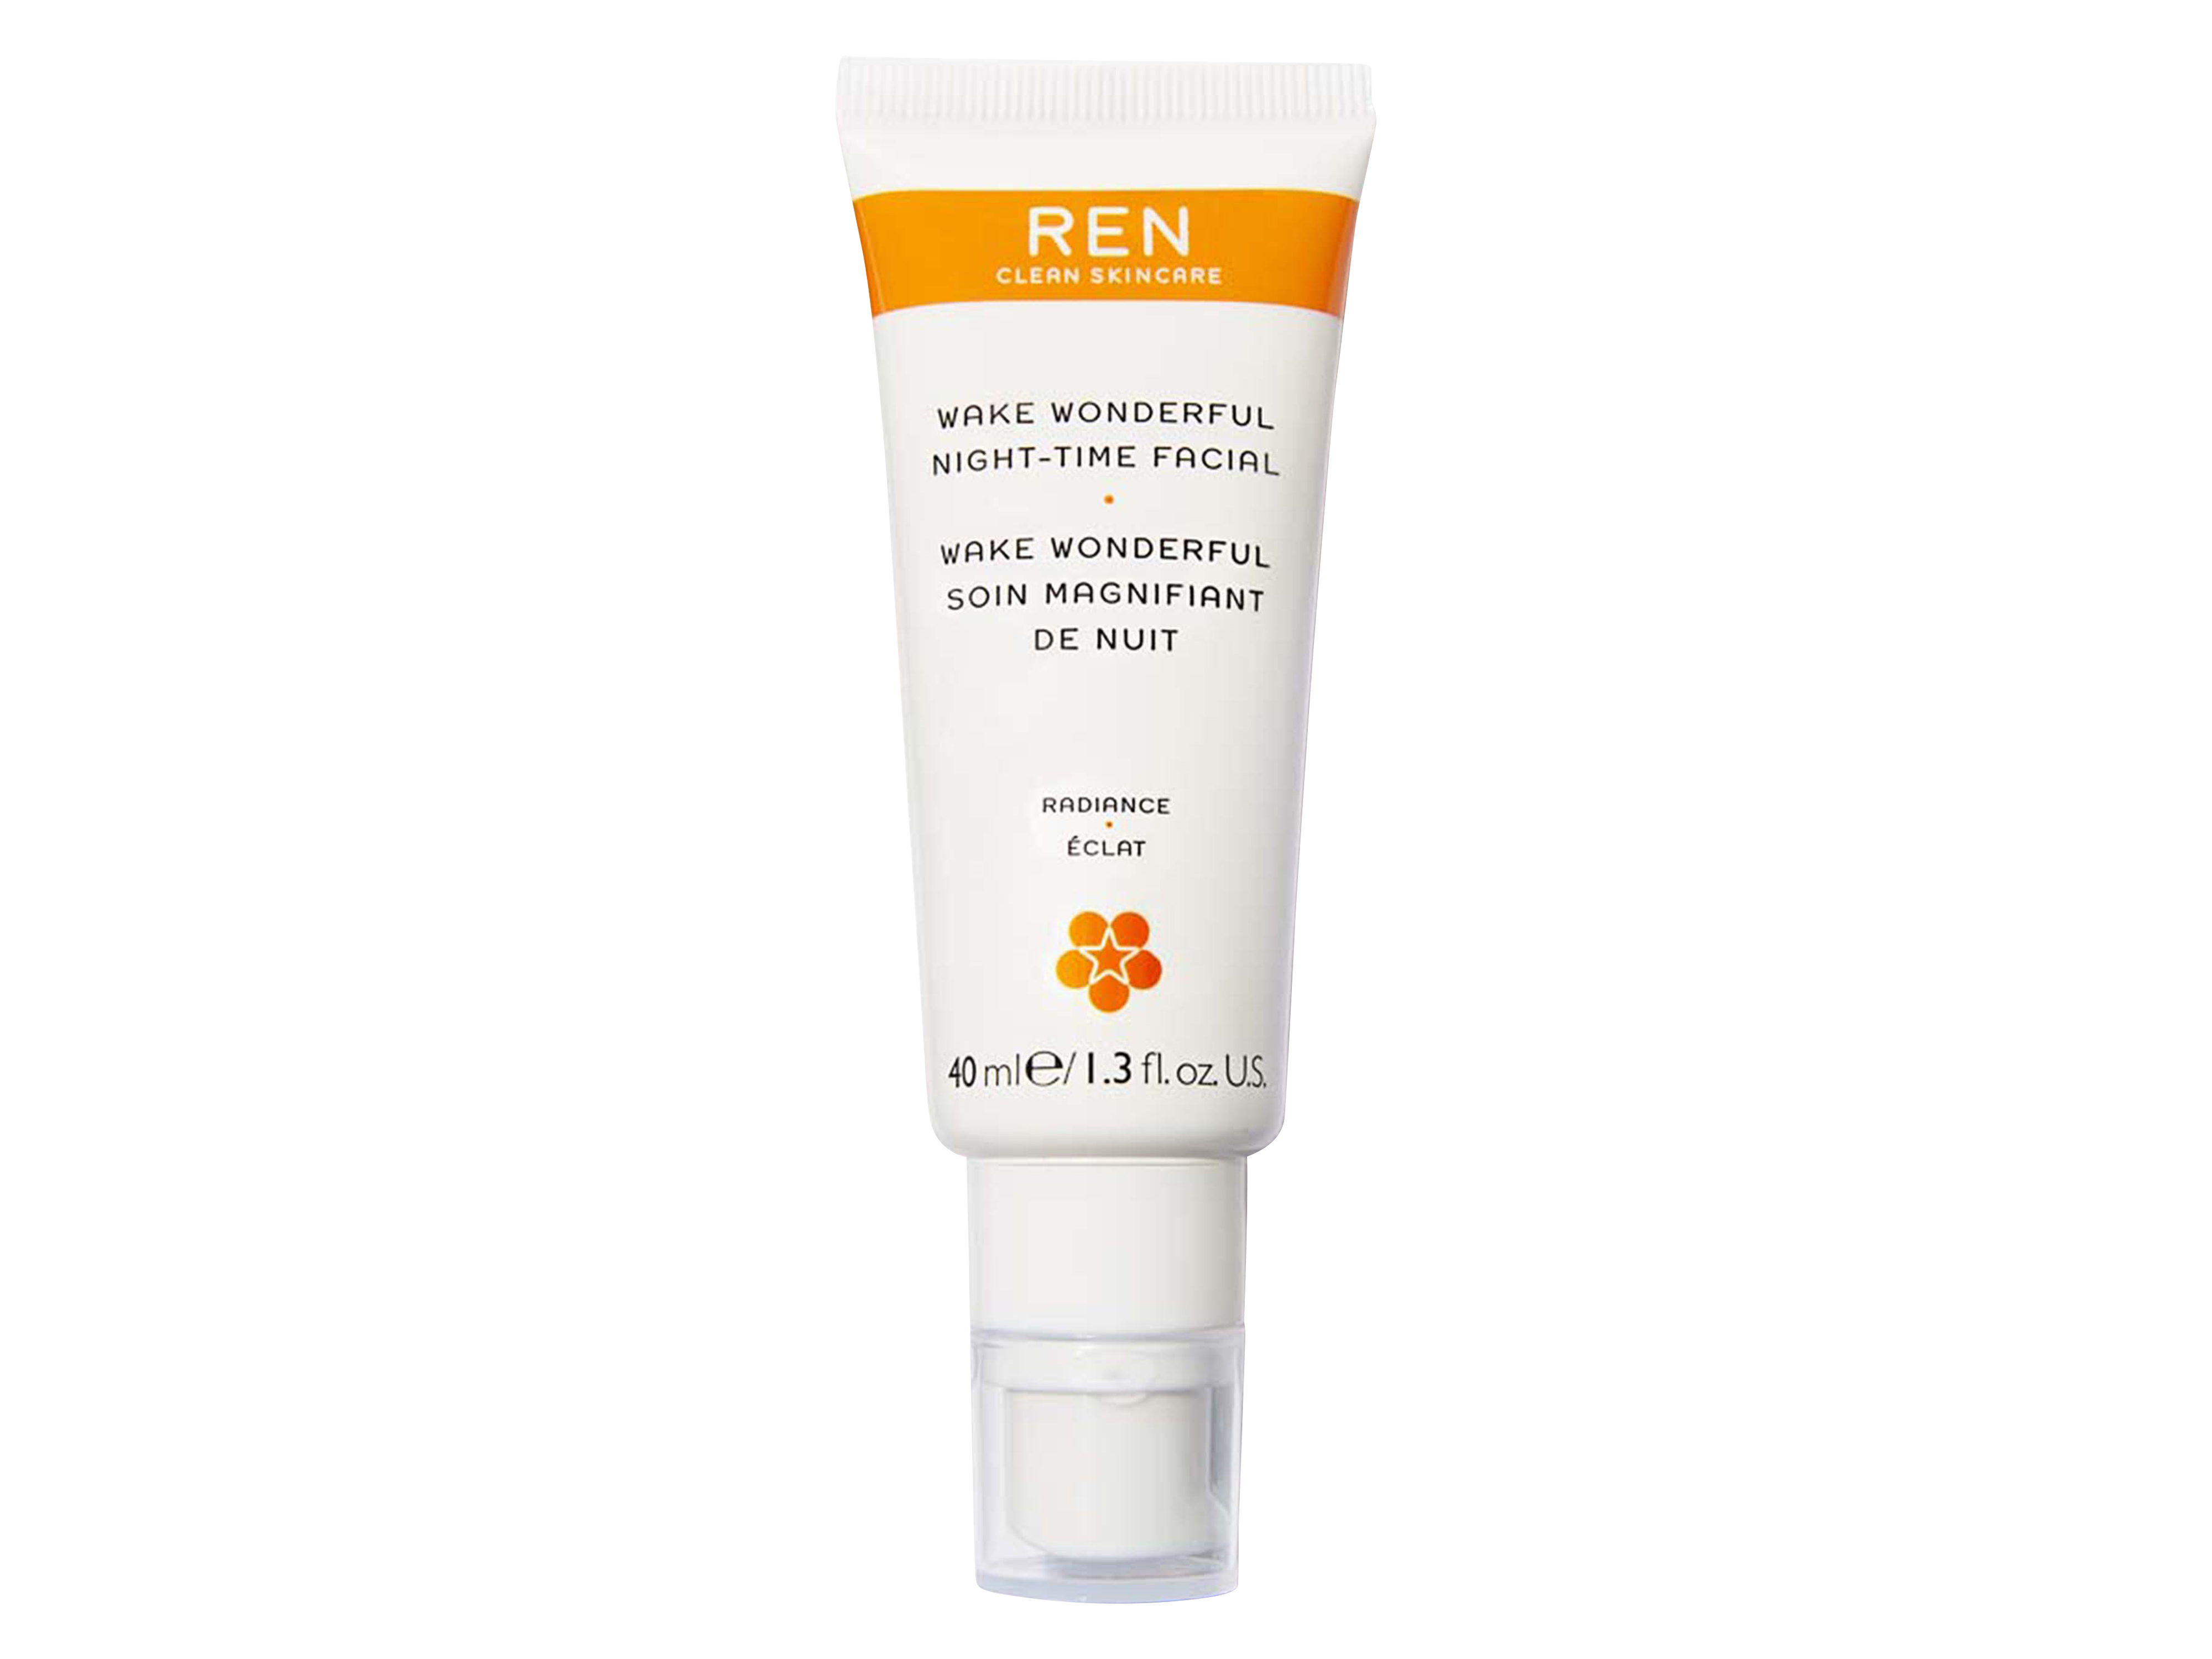 REN Wake Wonderful Night-Time Facial, 40 ml